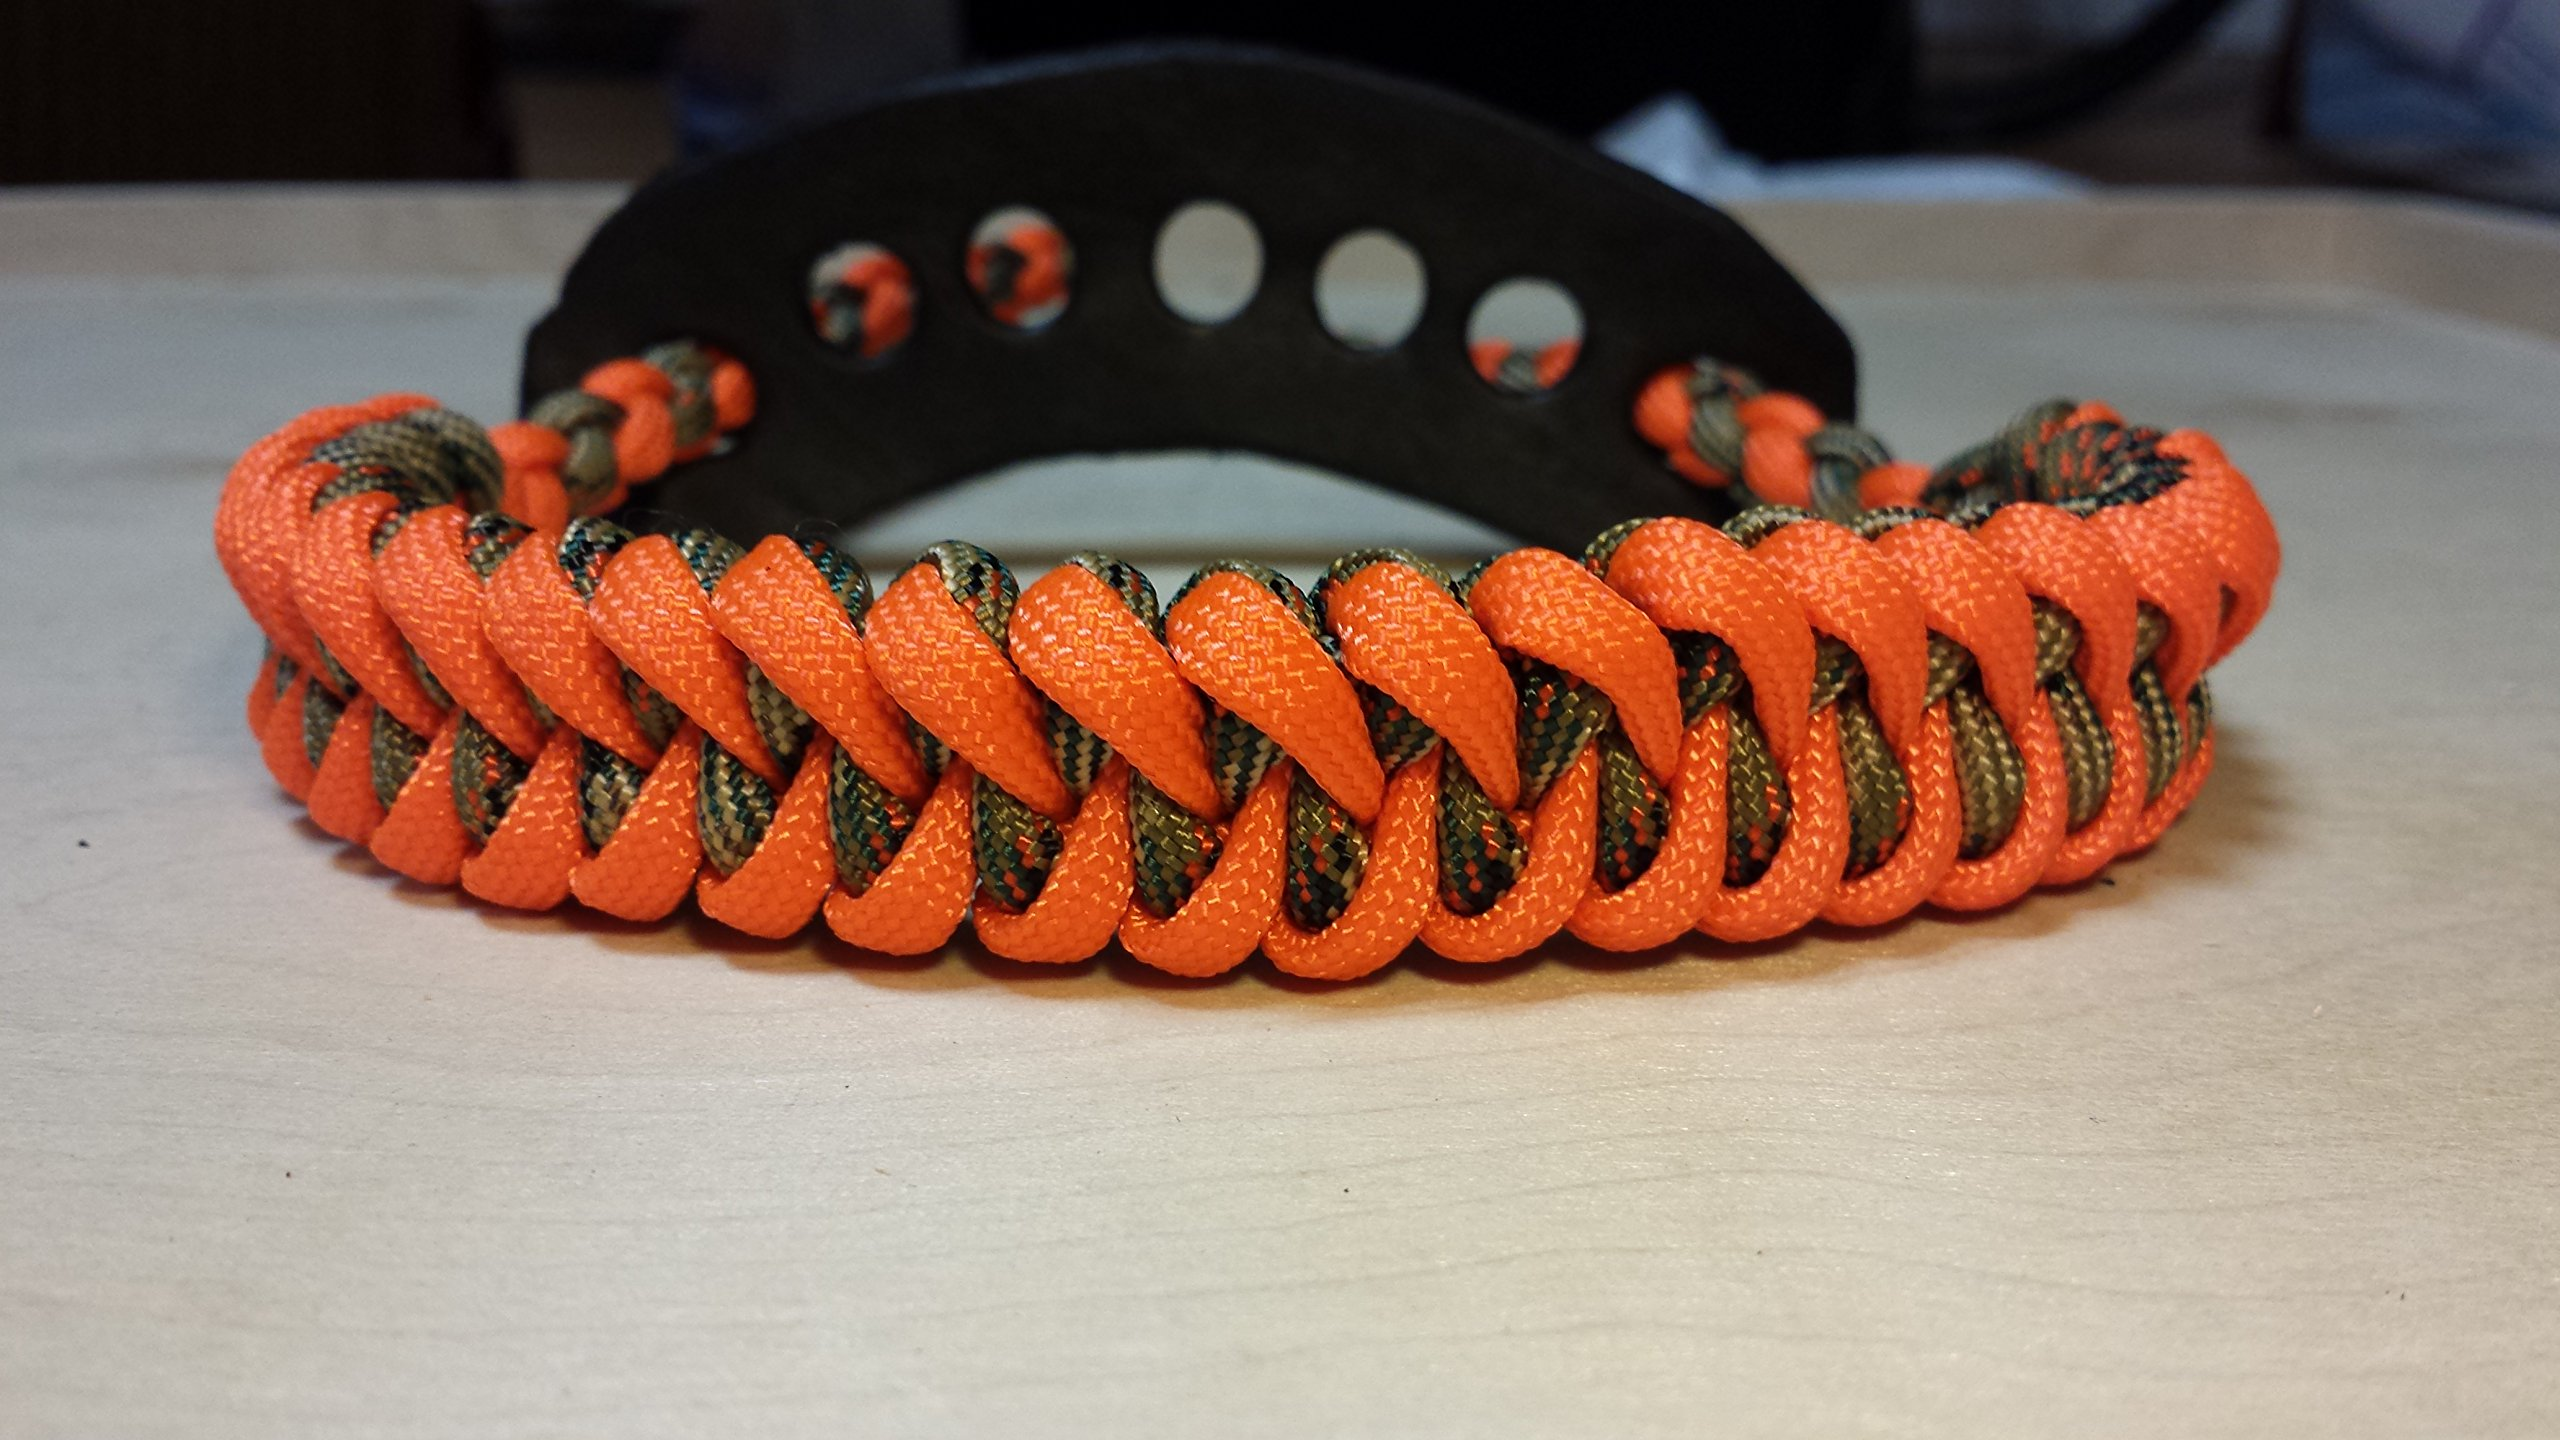 Muddy River Gear Archery Bow Wrist Sling Treestand and Orange Shark